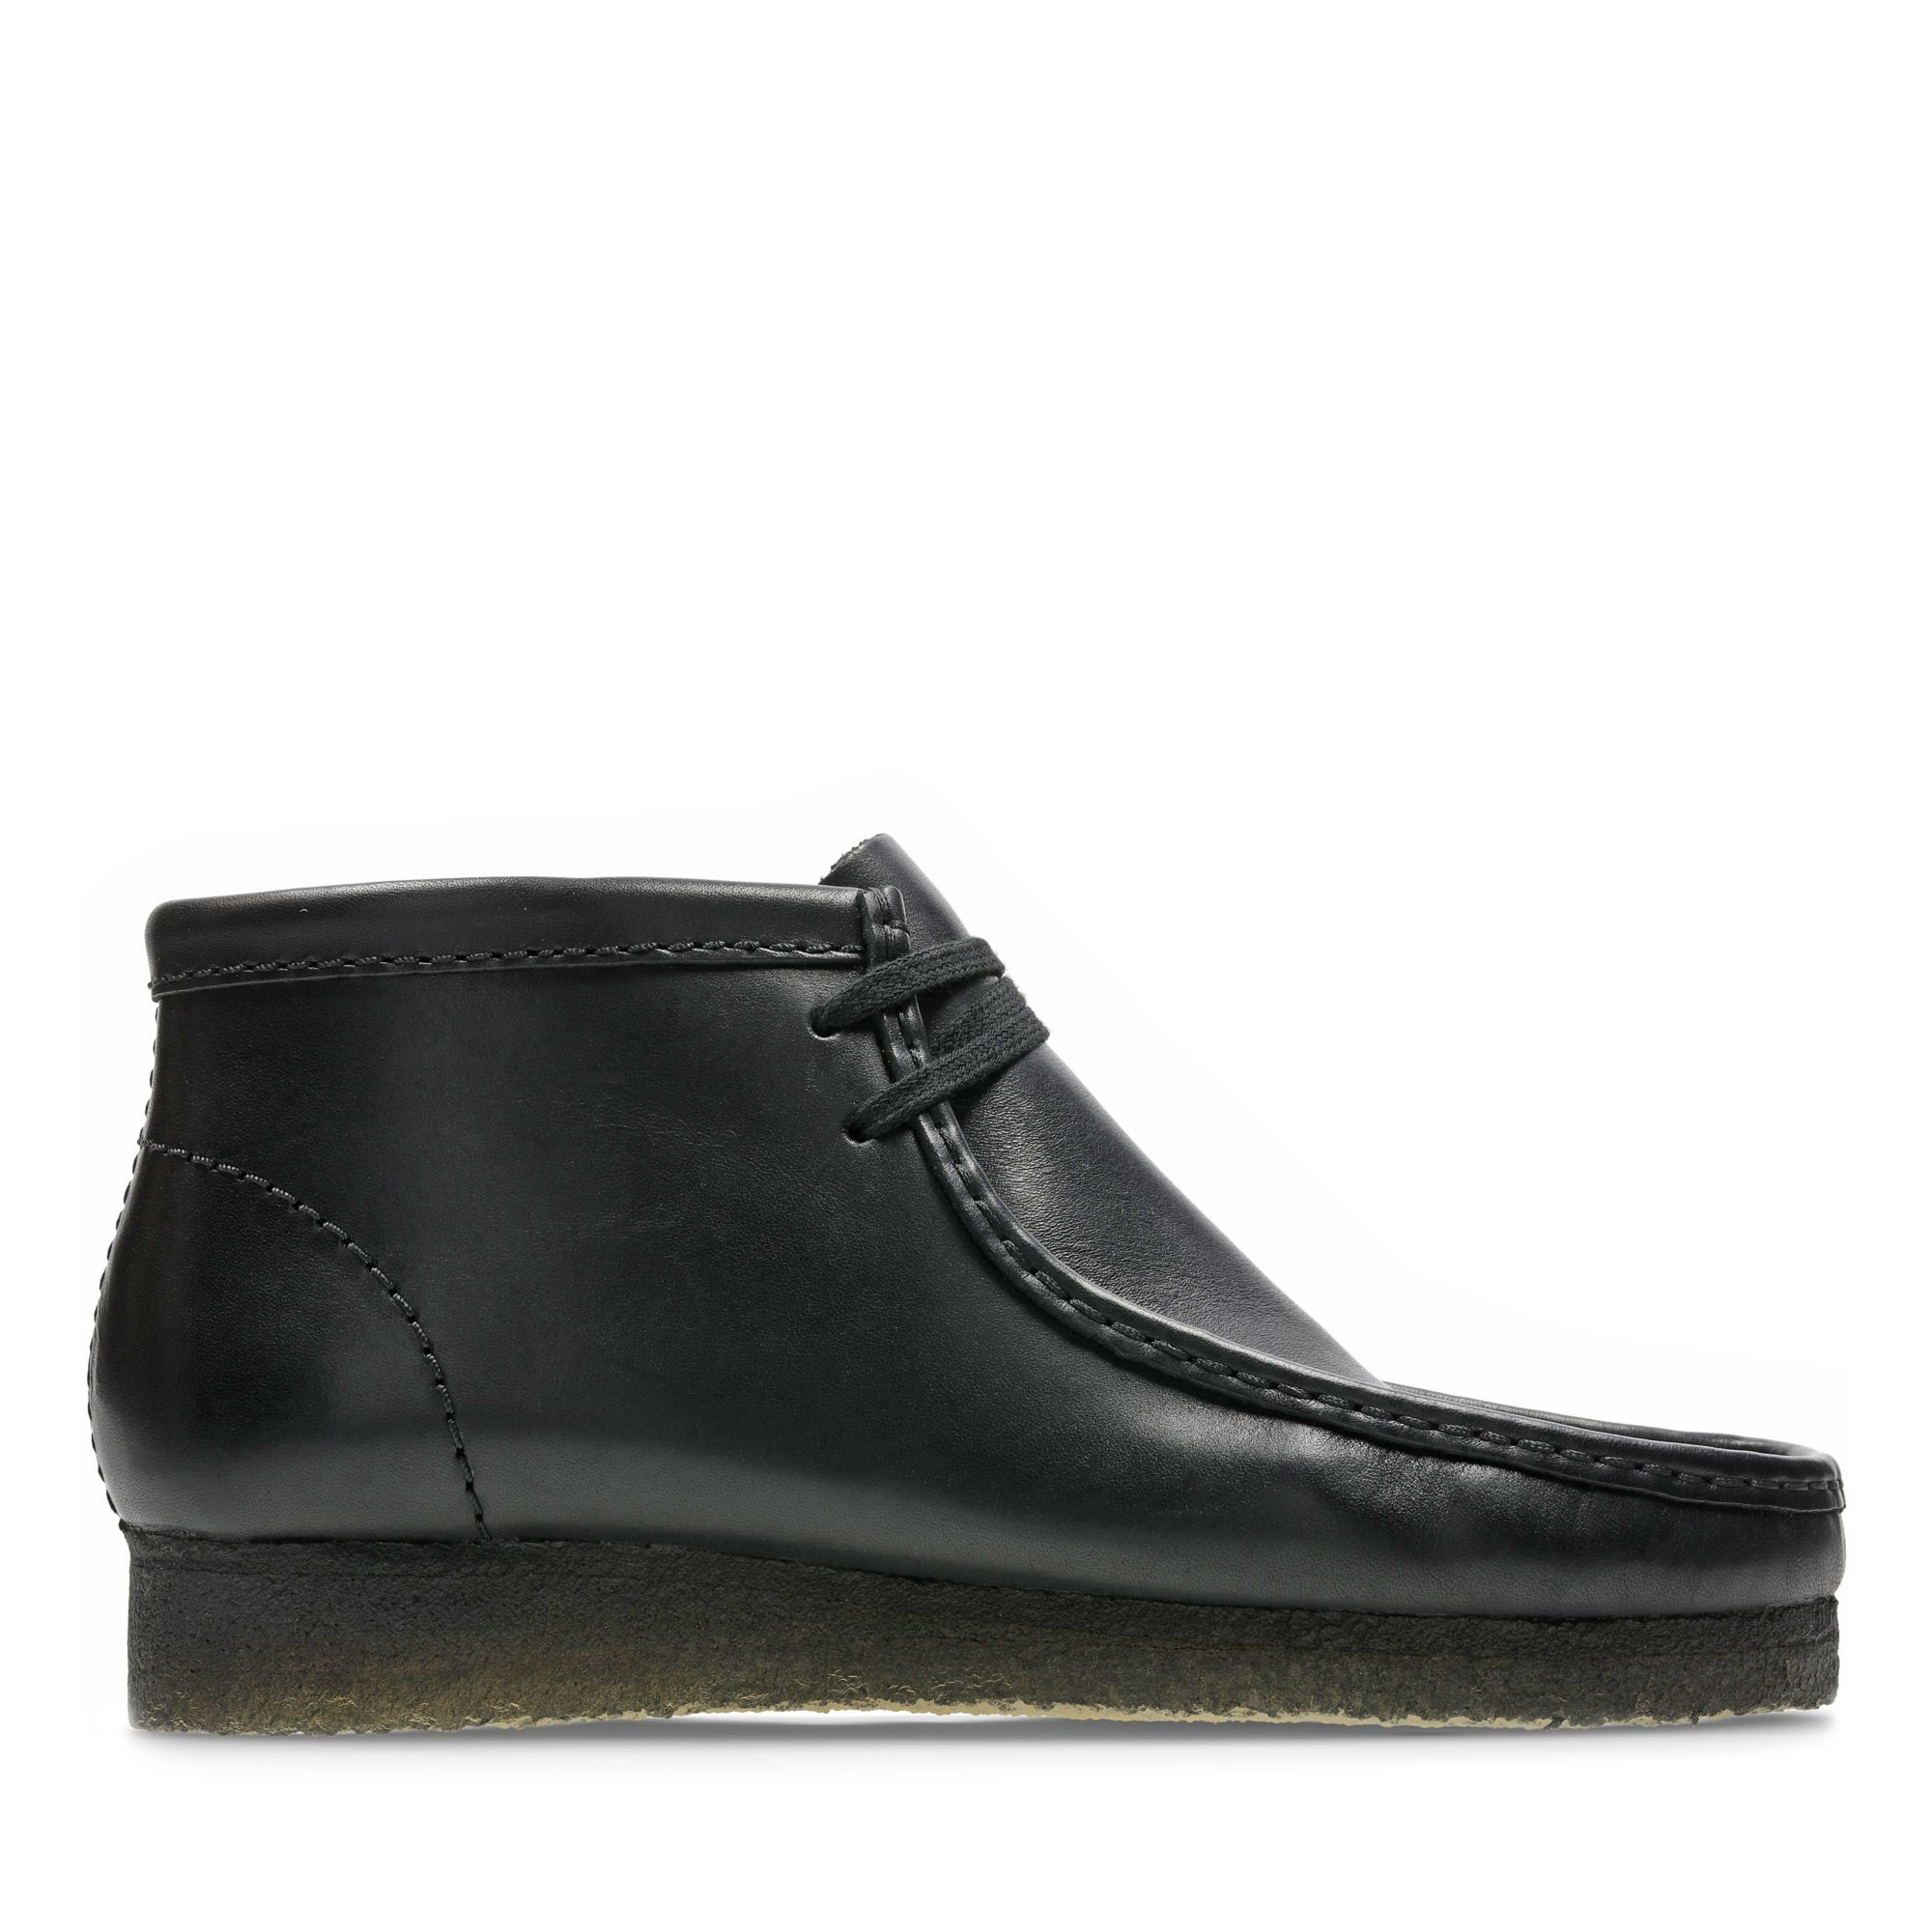 Clarks Wallabee Boot – Leather